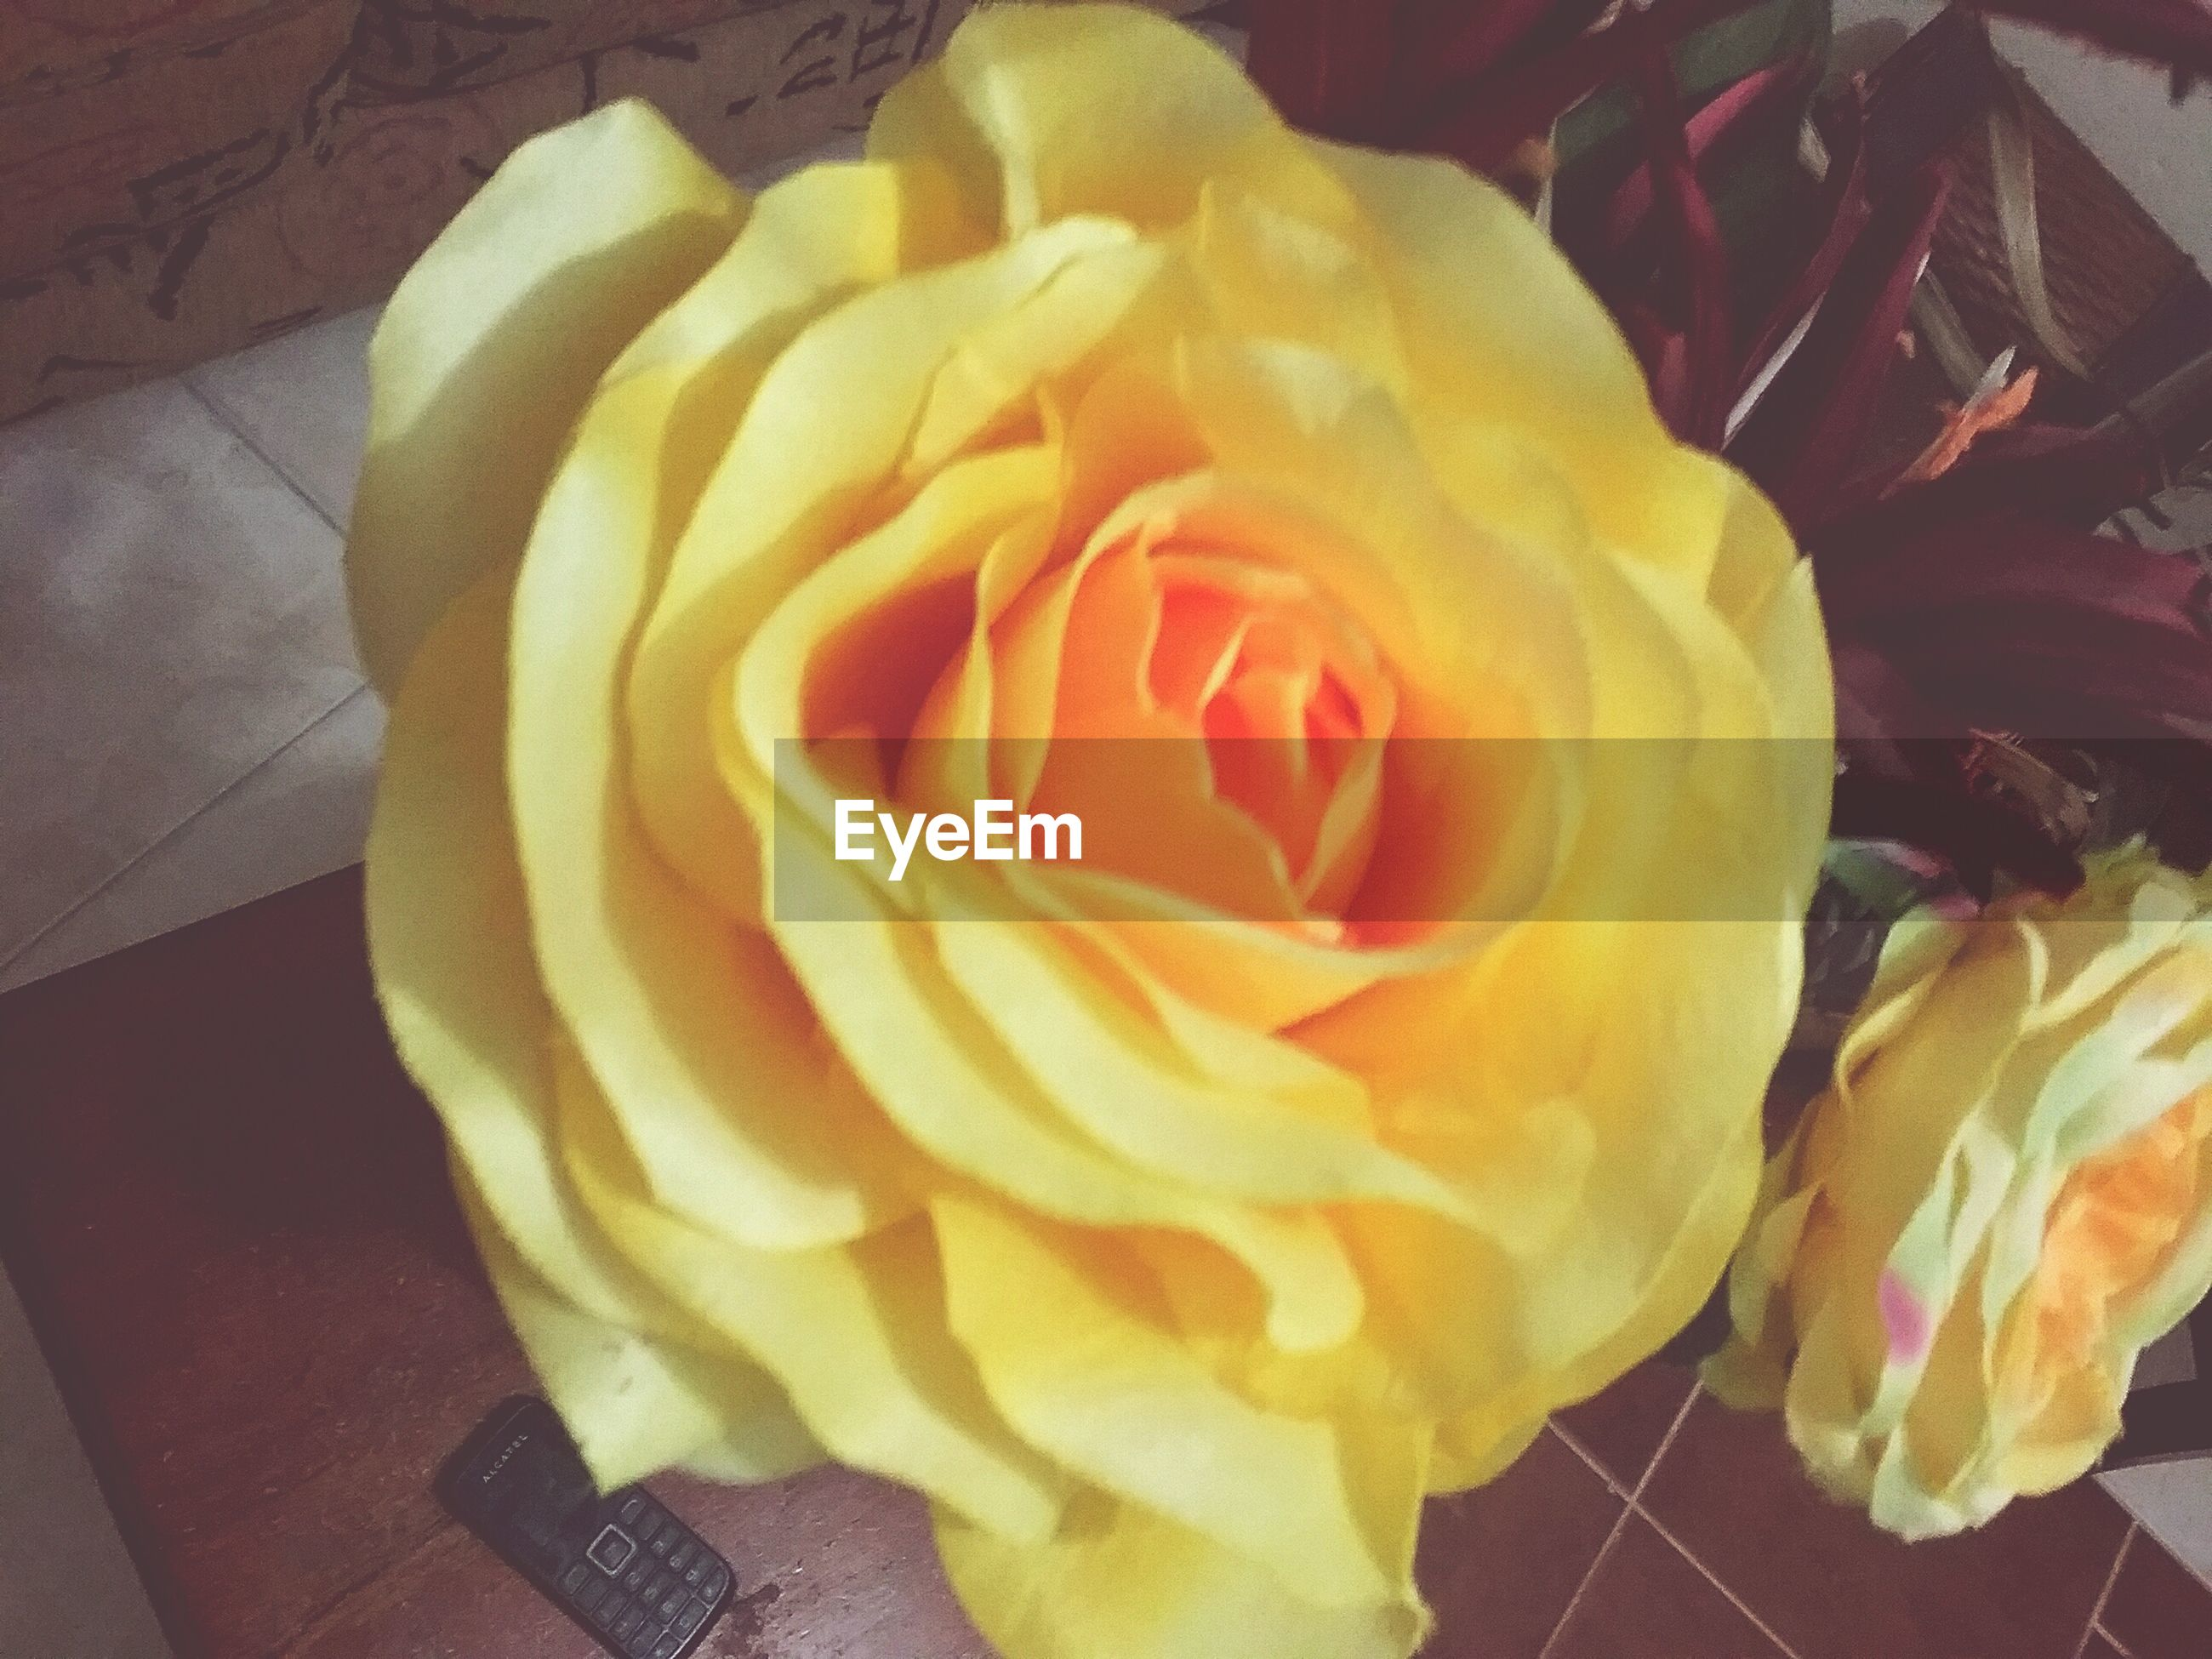 indoors, freshness, rose - flower, flower, close-up, food and drink, food, high angle view, still life, sweet food, table, petal, yellow, rose, indulgence, ready-to-eat, flower head, unhealthy eating, dessert, no people